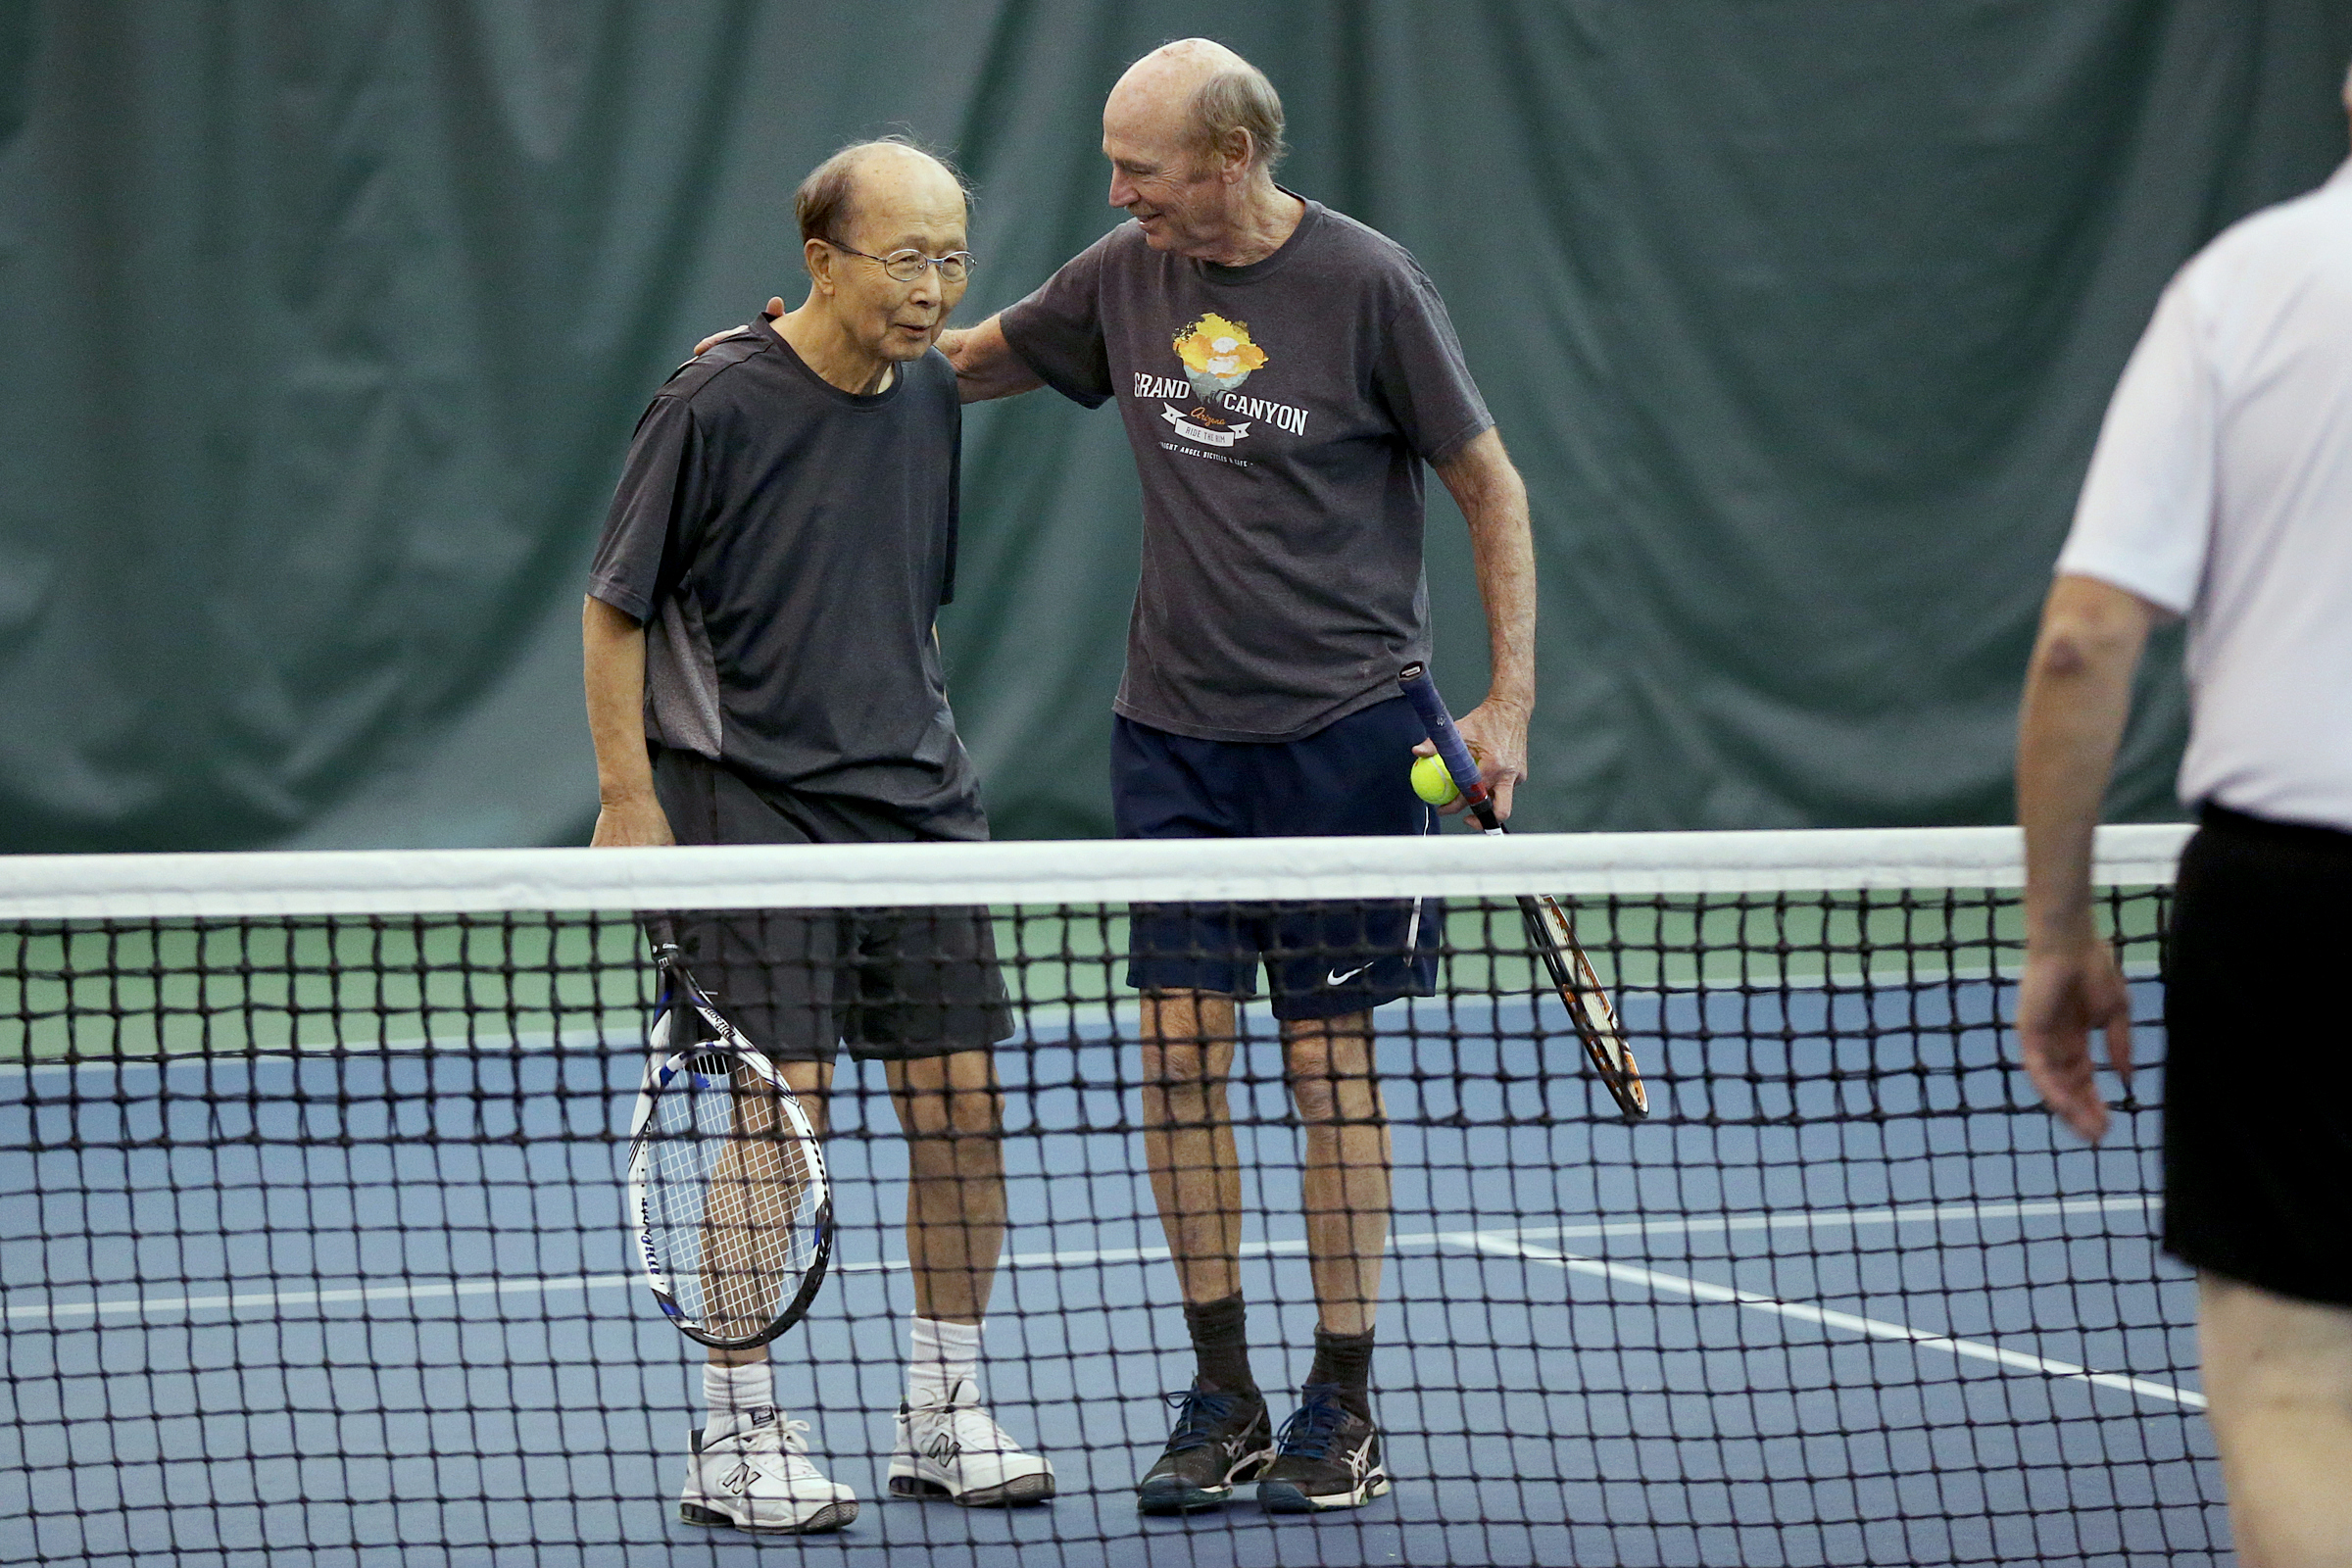 David Fultz, 75, (right) congratulates tennis partner Chong-sik Lee, 86, professor emeritus of political science at the University of Pennsylvania, after the pair won a match during their weekly tennis session at the Great Valley Racquet Club in Malvern. Lee, who escaped from North Korea during the Korean War, is publishing a memoir.